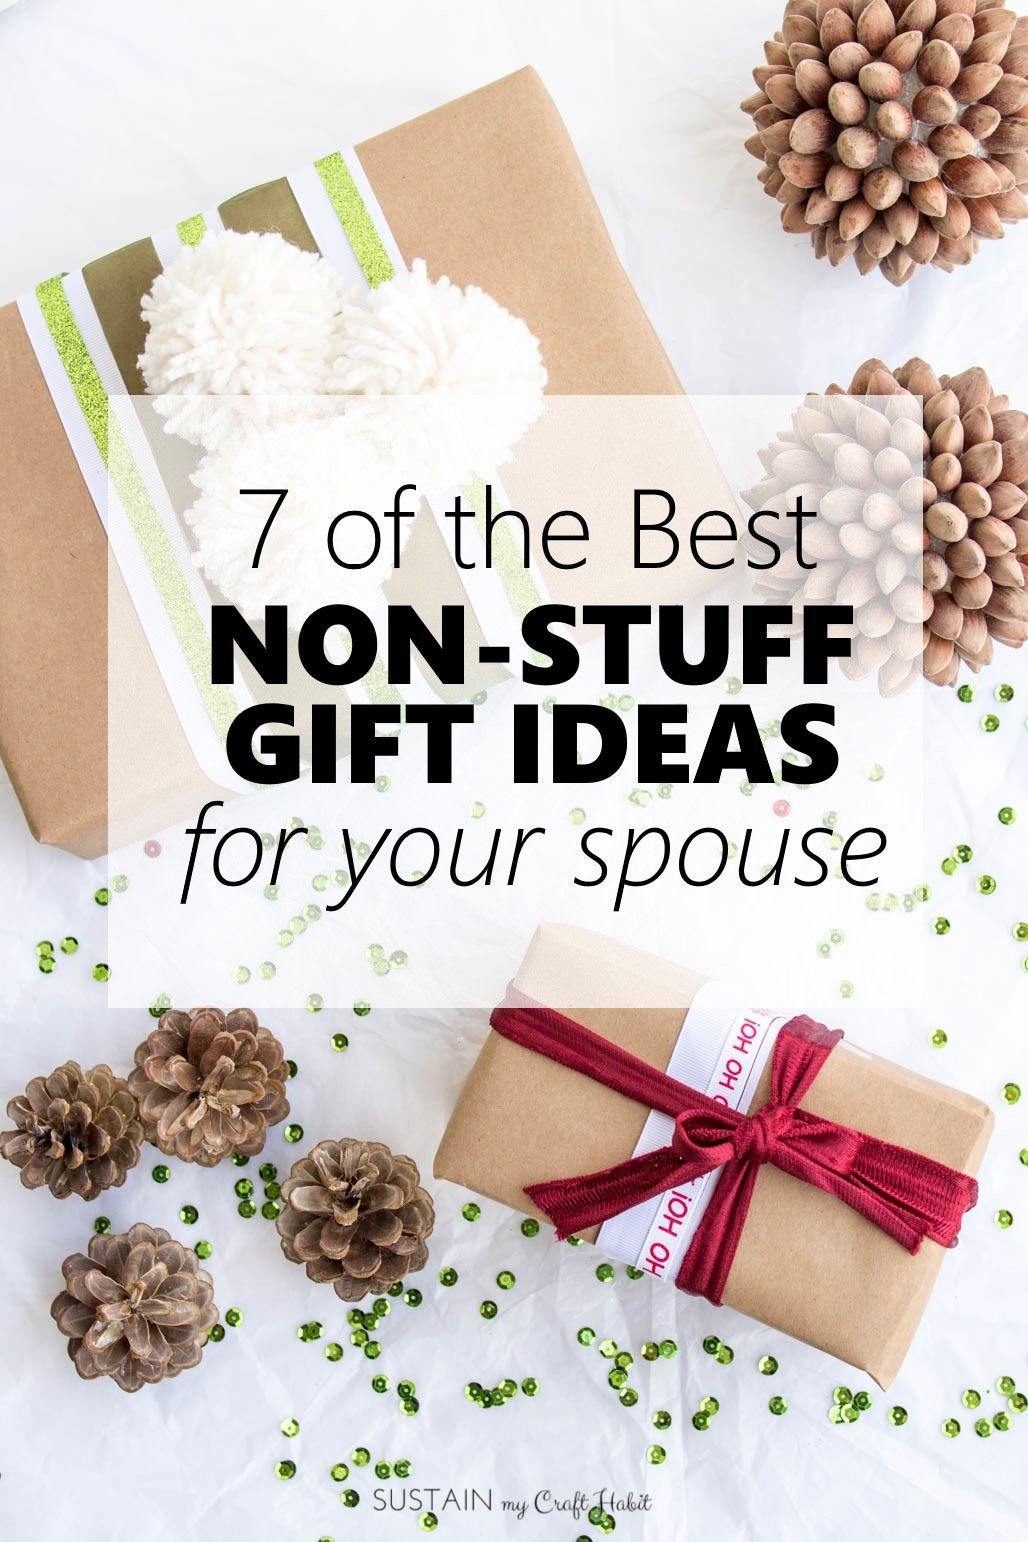 Best non-stuff gift ideas for your spouse | Throughtful gifts for ...